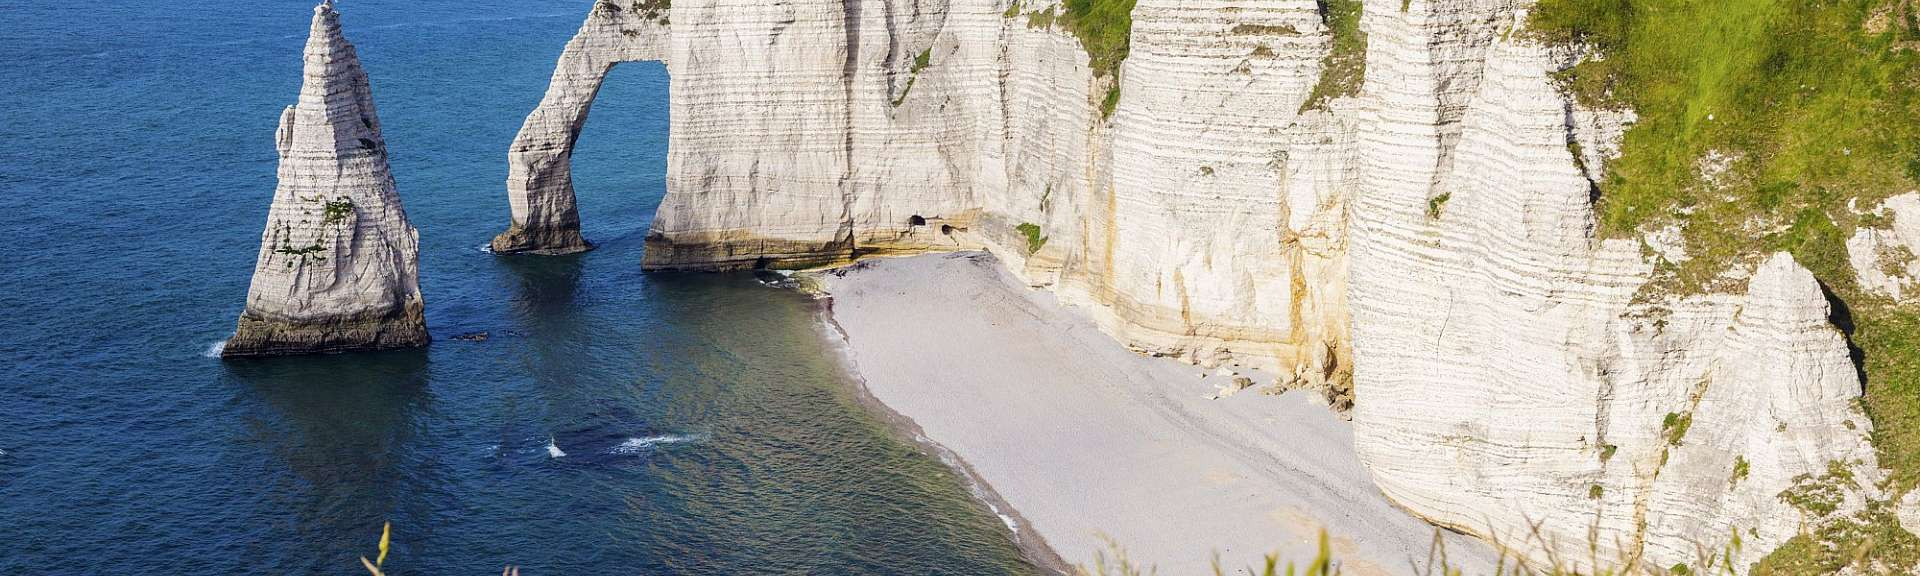 Old Harry Rocks: Kreidesäulen an der Jurassic Coast